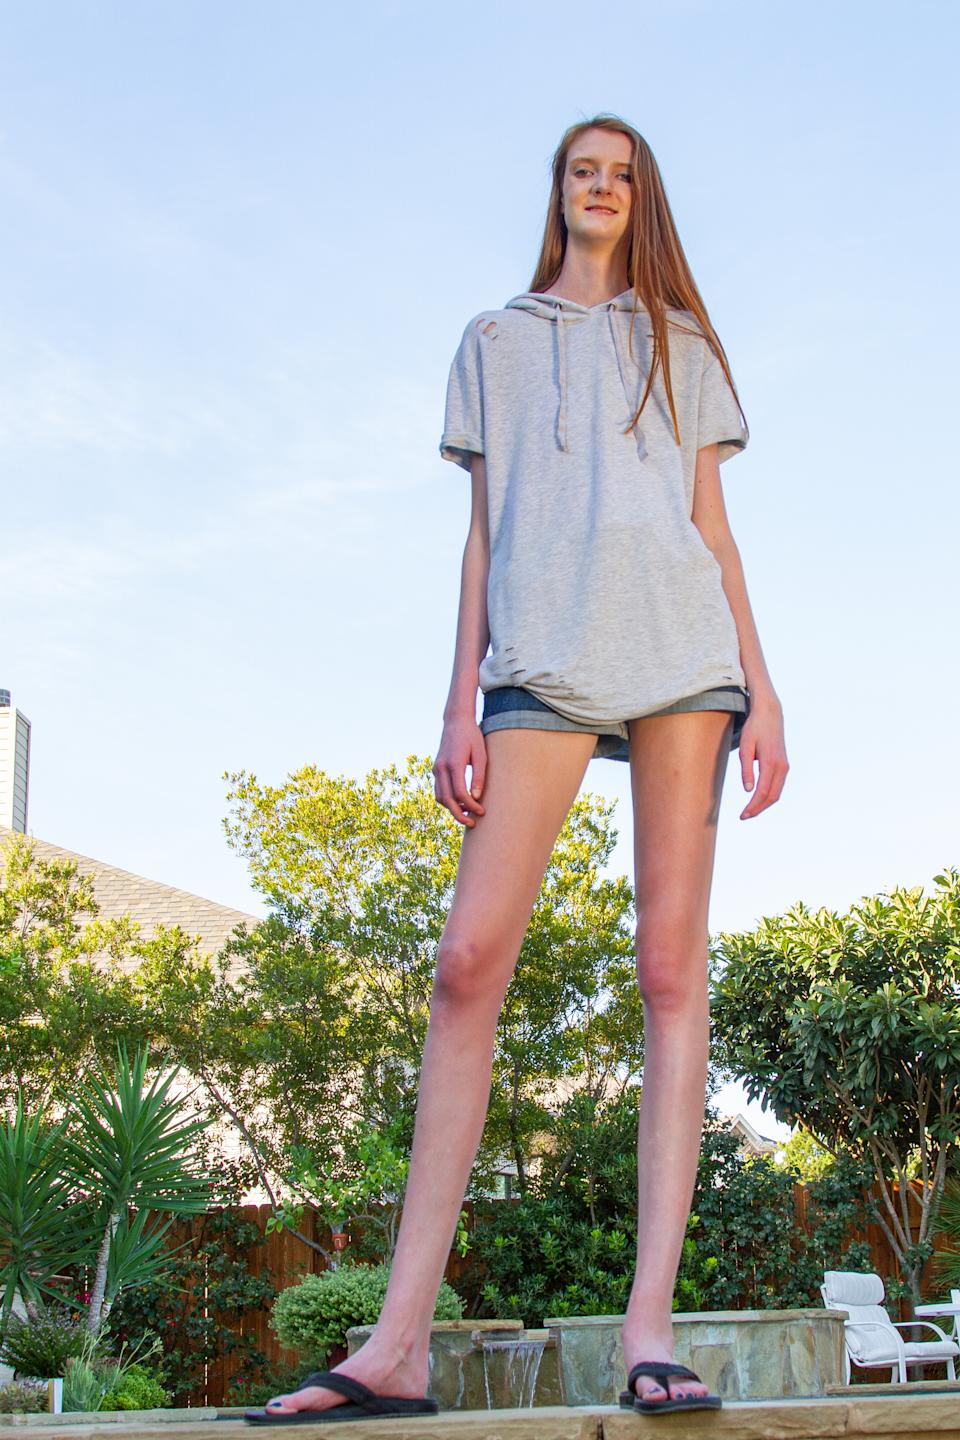 ***EXCLUSIVE VIDEO AVAILABLE*** AUSTIN, TX, USA - 11 AUGUST 2019: 16-year-old Maci Currin, whose 53 inch long legs are believed to be the world's longest, at home on 11 August, 2019, in Austin, Texas. A TOWERING teenager from Texas is about to strut her way into the record books as the proud owner of the world's longest legs. Aged only 16, Maci Currin, from Austin, Texas, has legs measuring an incredible 53 inches - smashing the previous record of 52.2 inches held by Ekaterina Lisina, of Russia. The 6ft 9in aspiring model was only 19 inches when born, but a series of growth spurts meant she rocketed to 5ft 7in by the time she was nine years old. Maci also has an inseam of 43 inches and has to stoop to avoid banging her head when walking through doors, but says she is proud of her lengthy limbs despite the added attention they bring. PHOTOGRAPH BY: Bradley Beesley / Barcroft Media (Photo credit should read Bradley Beesley / Barcroft Media / Barcroft Media via Getty Images)